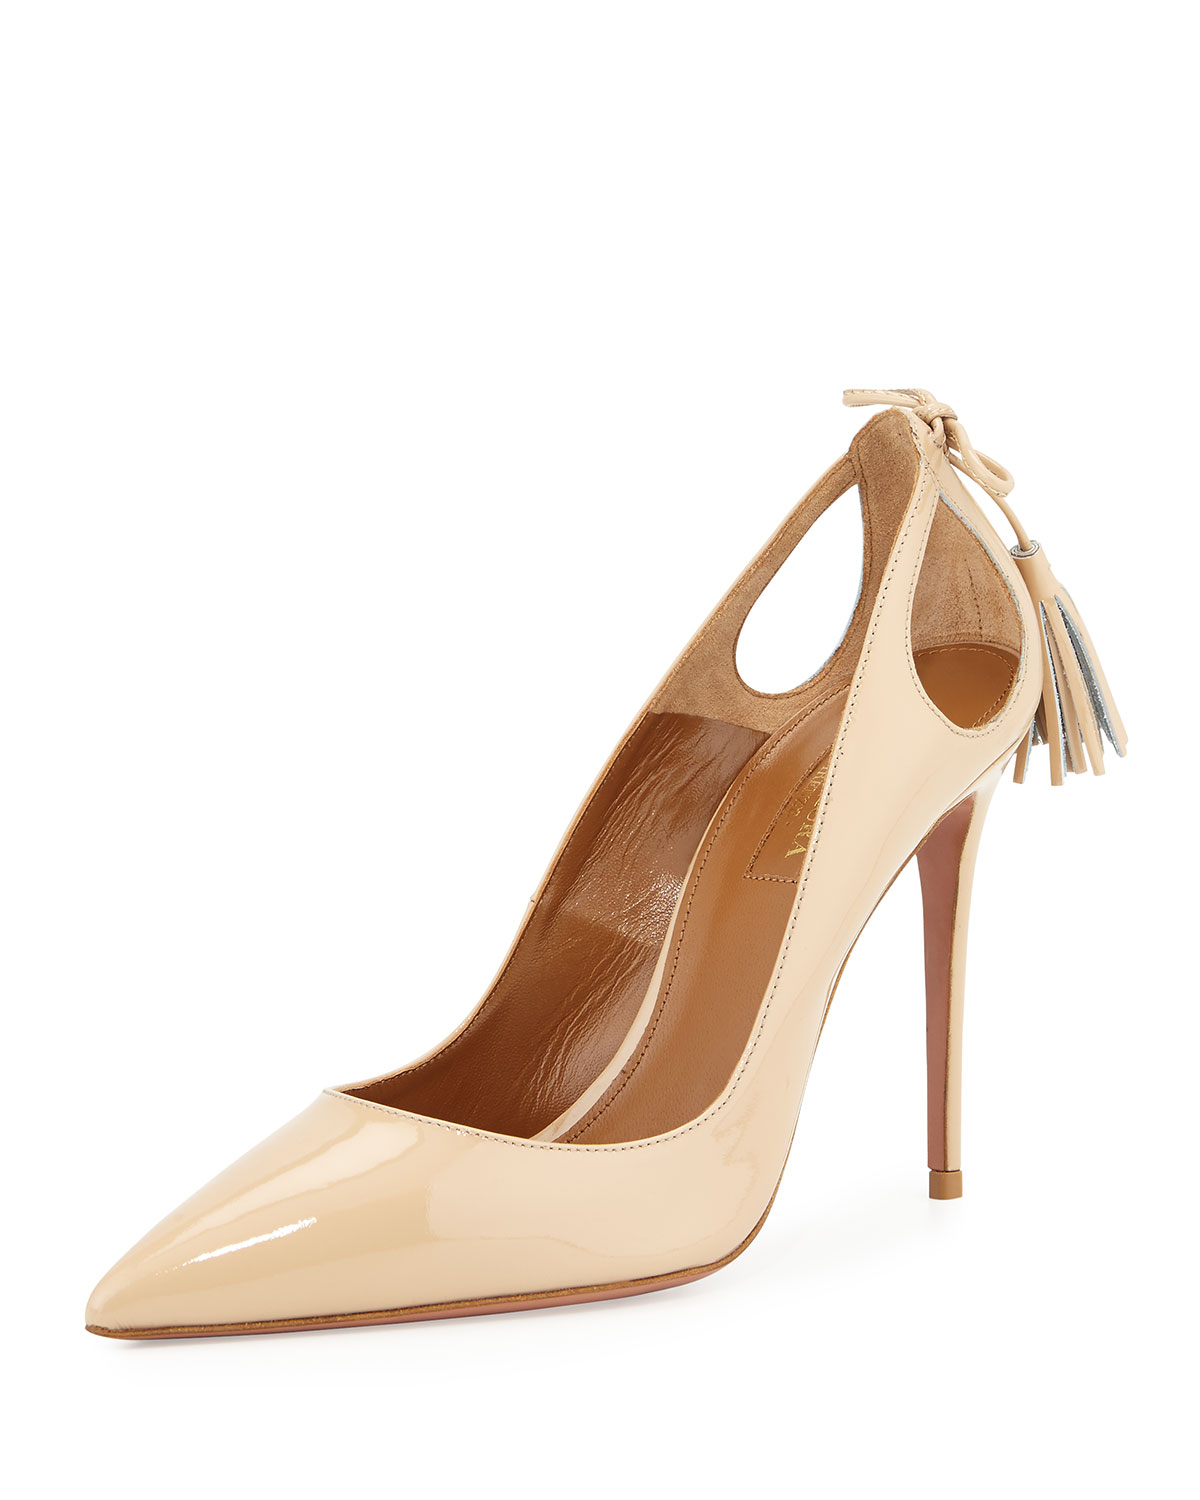 Aquazzura Forever Marilyn Patent Leather Cutout Pump, Nude | Neiman Marcus